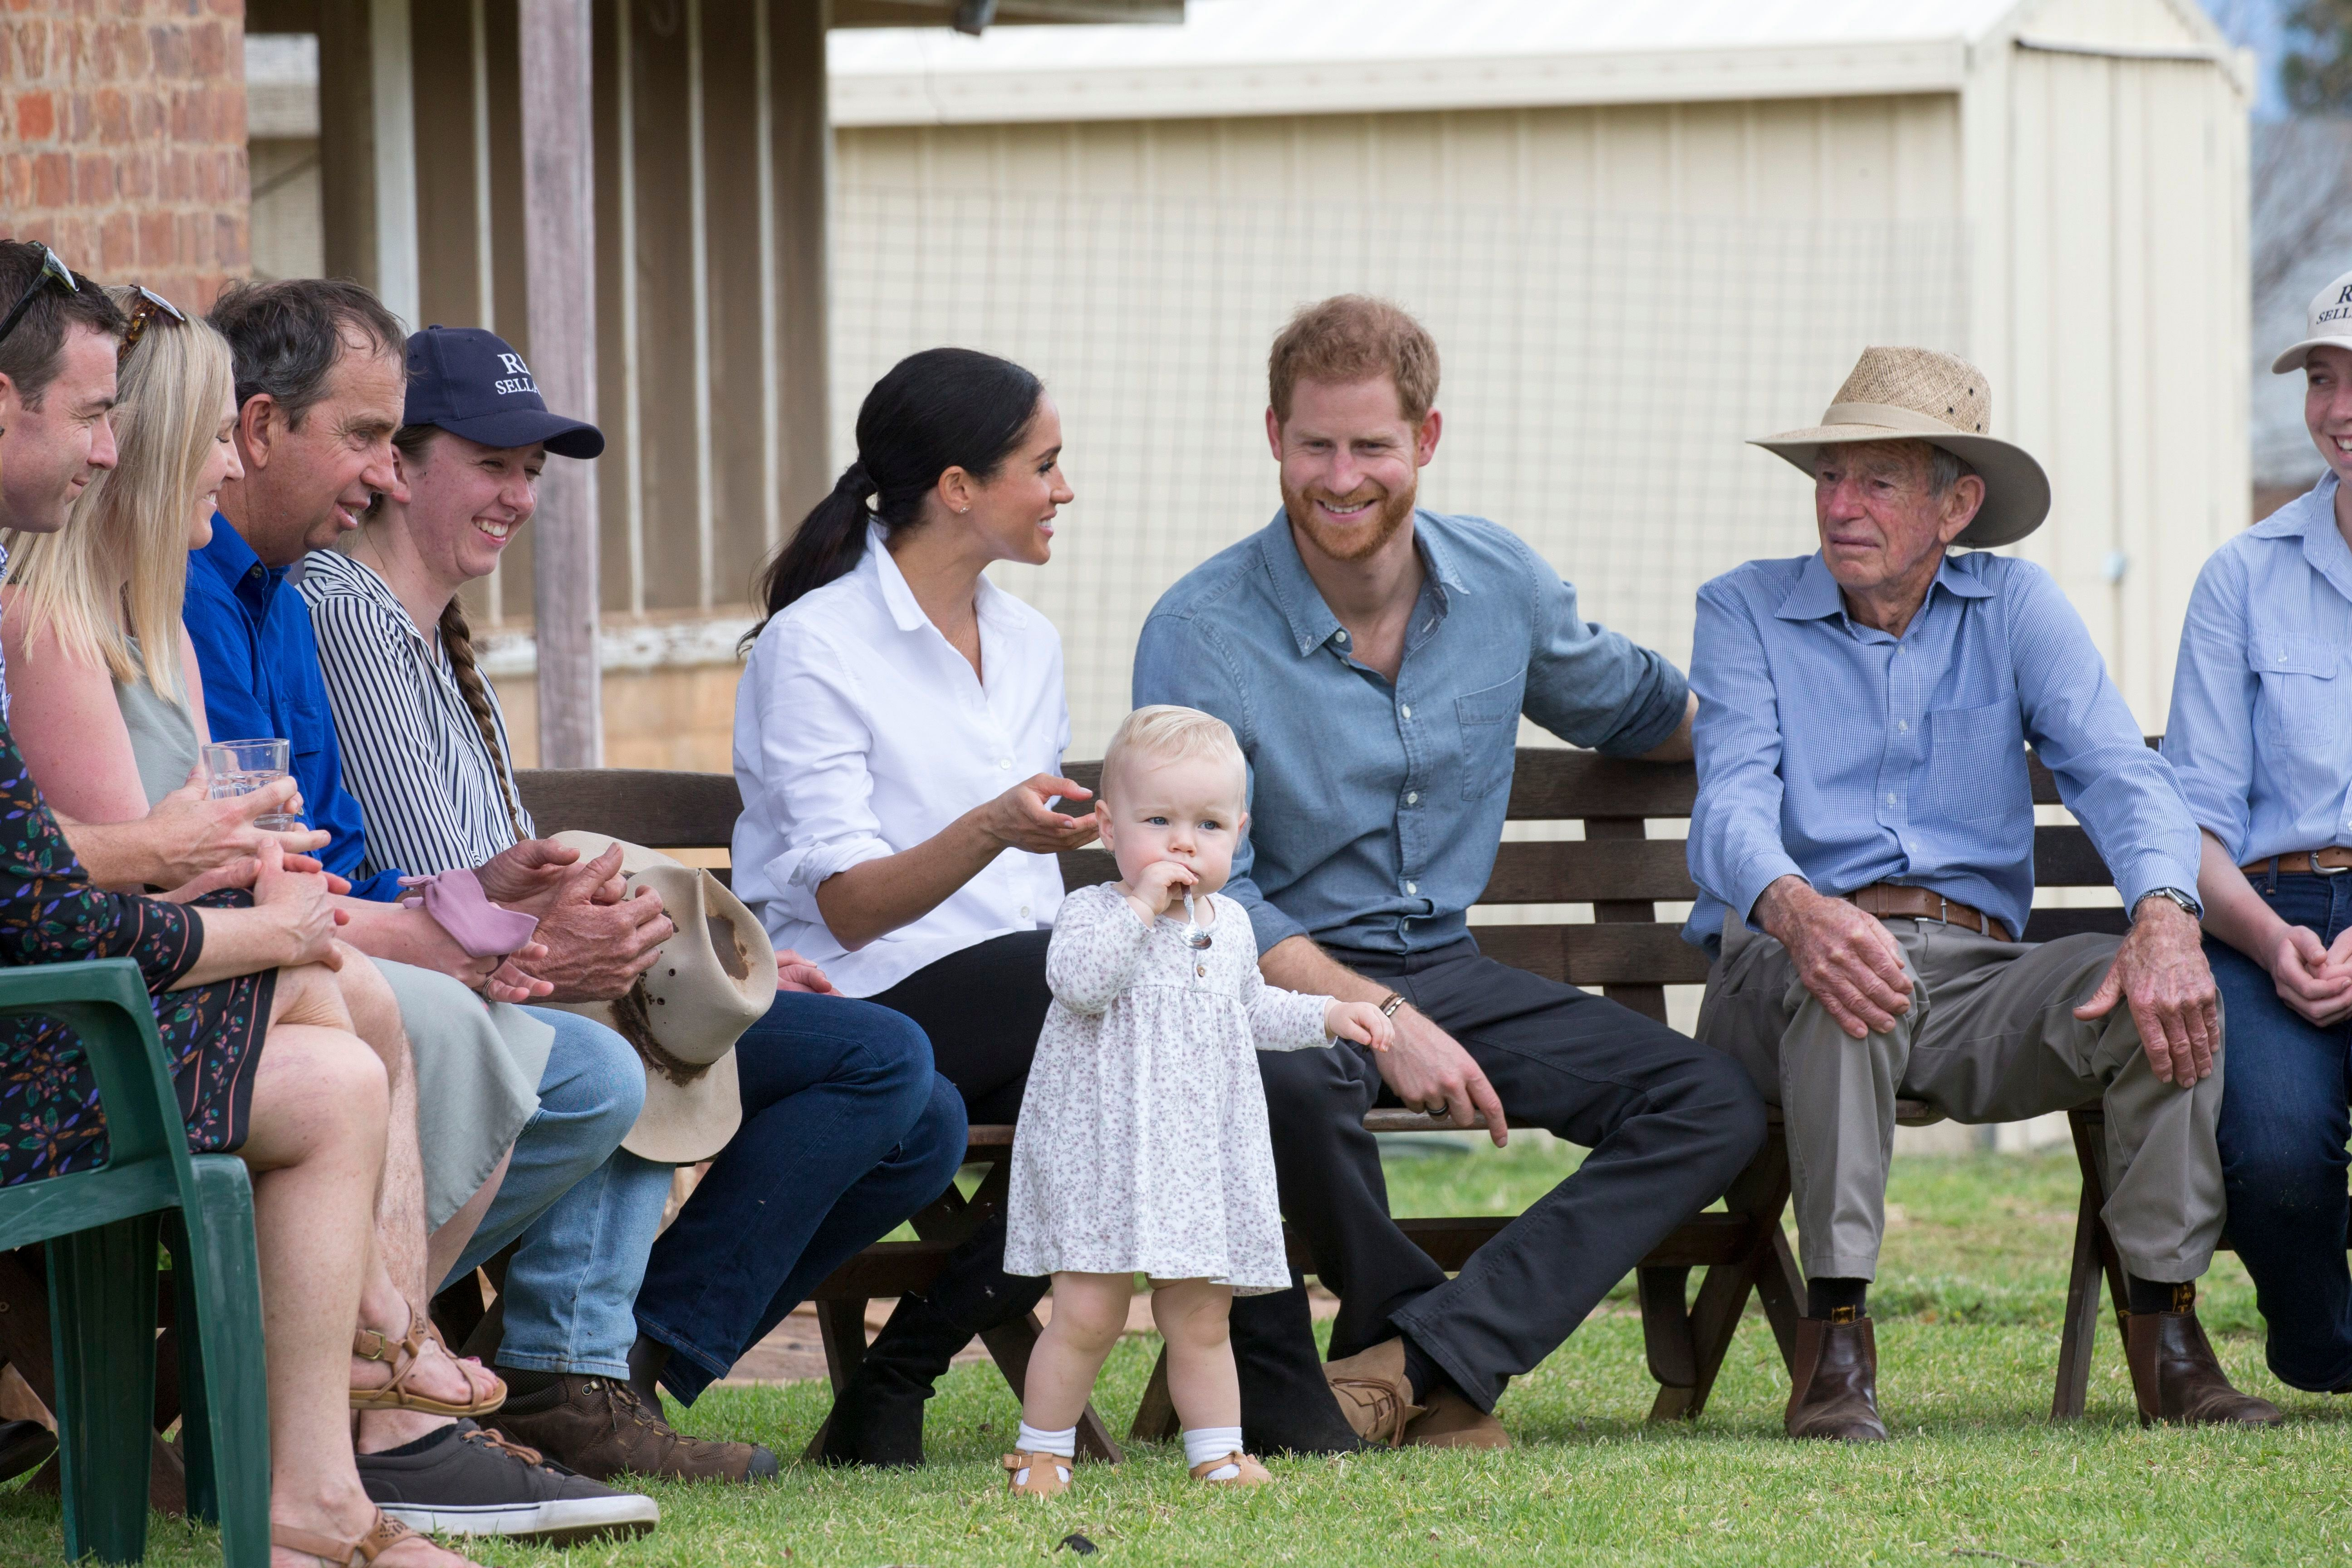 Prince Harry and Duchess Meghan relax at Mountain View, a family run farm in Dubbo, New South Wales, Australia, on day 2 of their royal visit Down Under on Oct. 17, 2018.